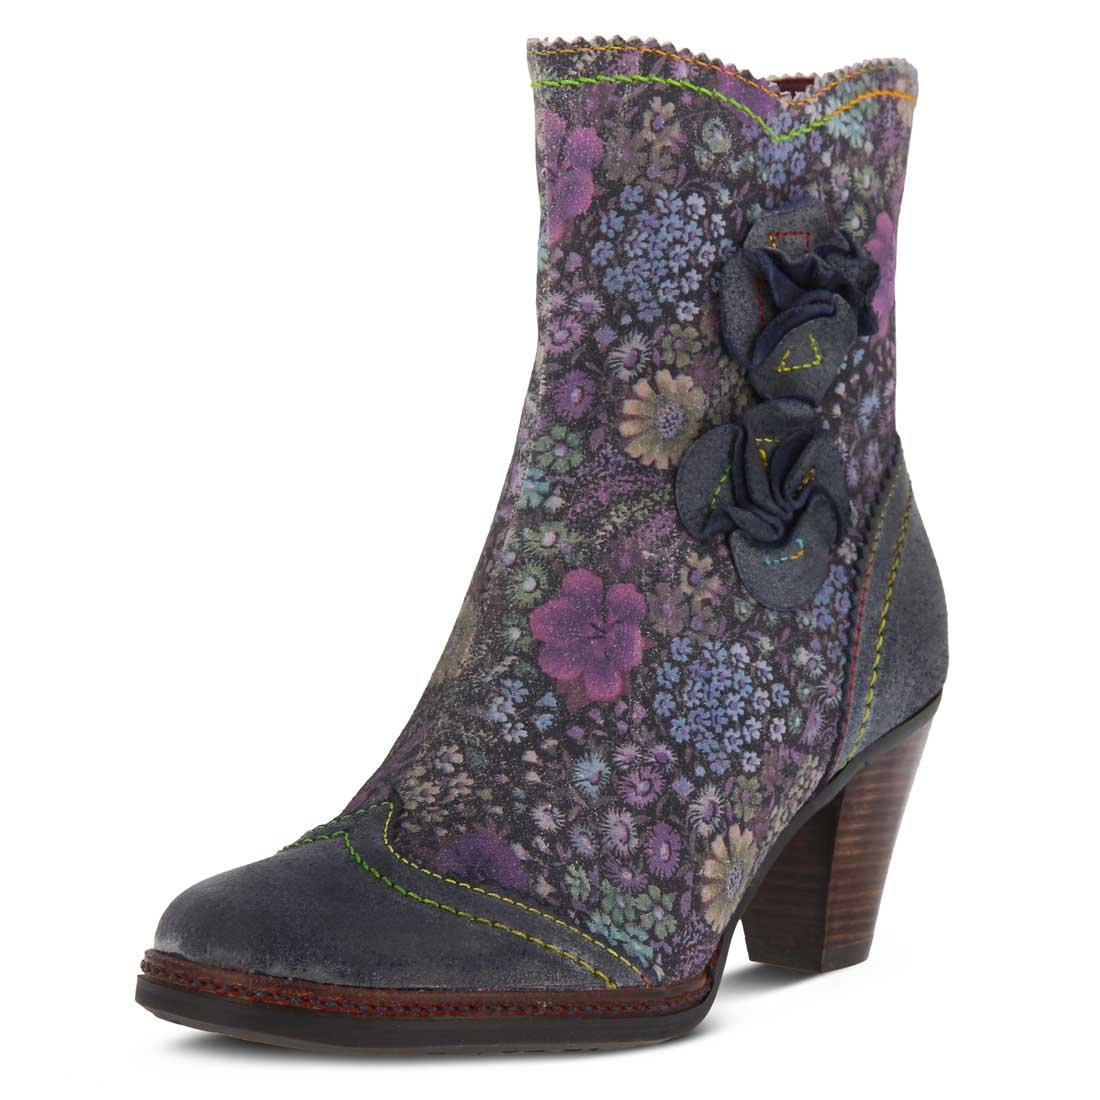 L'Artiste by Spring Step Women's Simonetta Boot B074HG1GJ7 39 M EU|Blue Multi